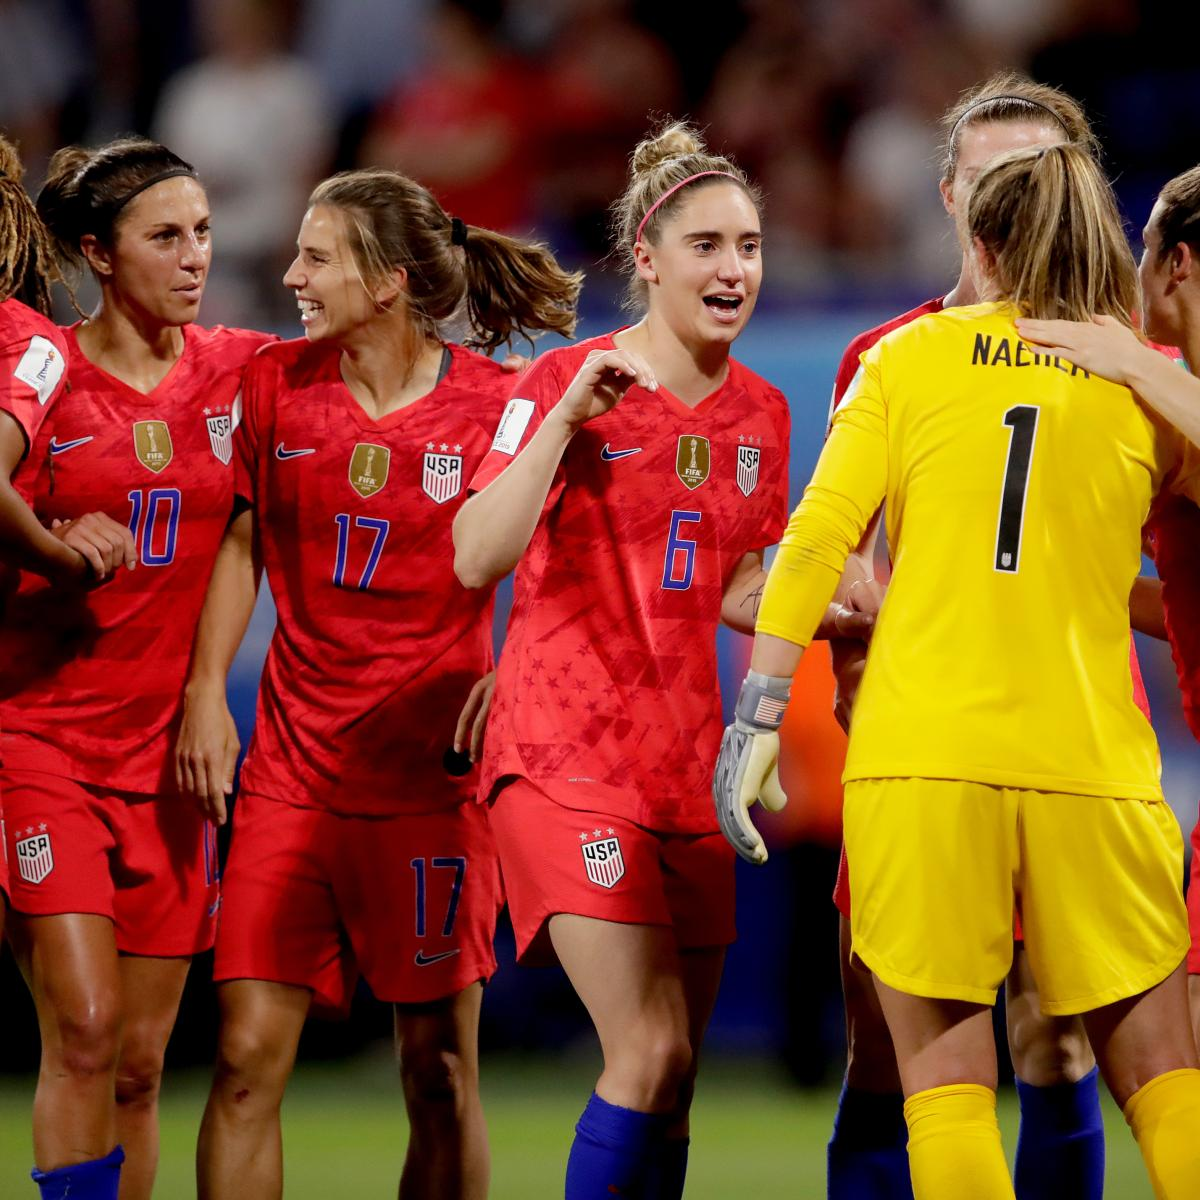 Champions League 2019 Live Stream Odds For Tuesday S: USA Vs. Netherlands: Odds, Live Stream, TV Info For Women